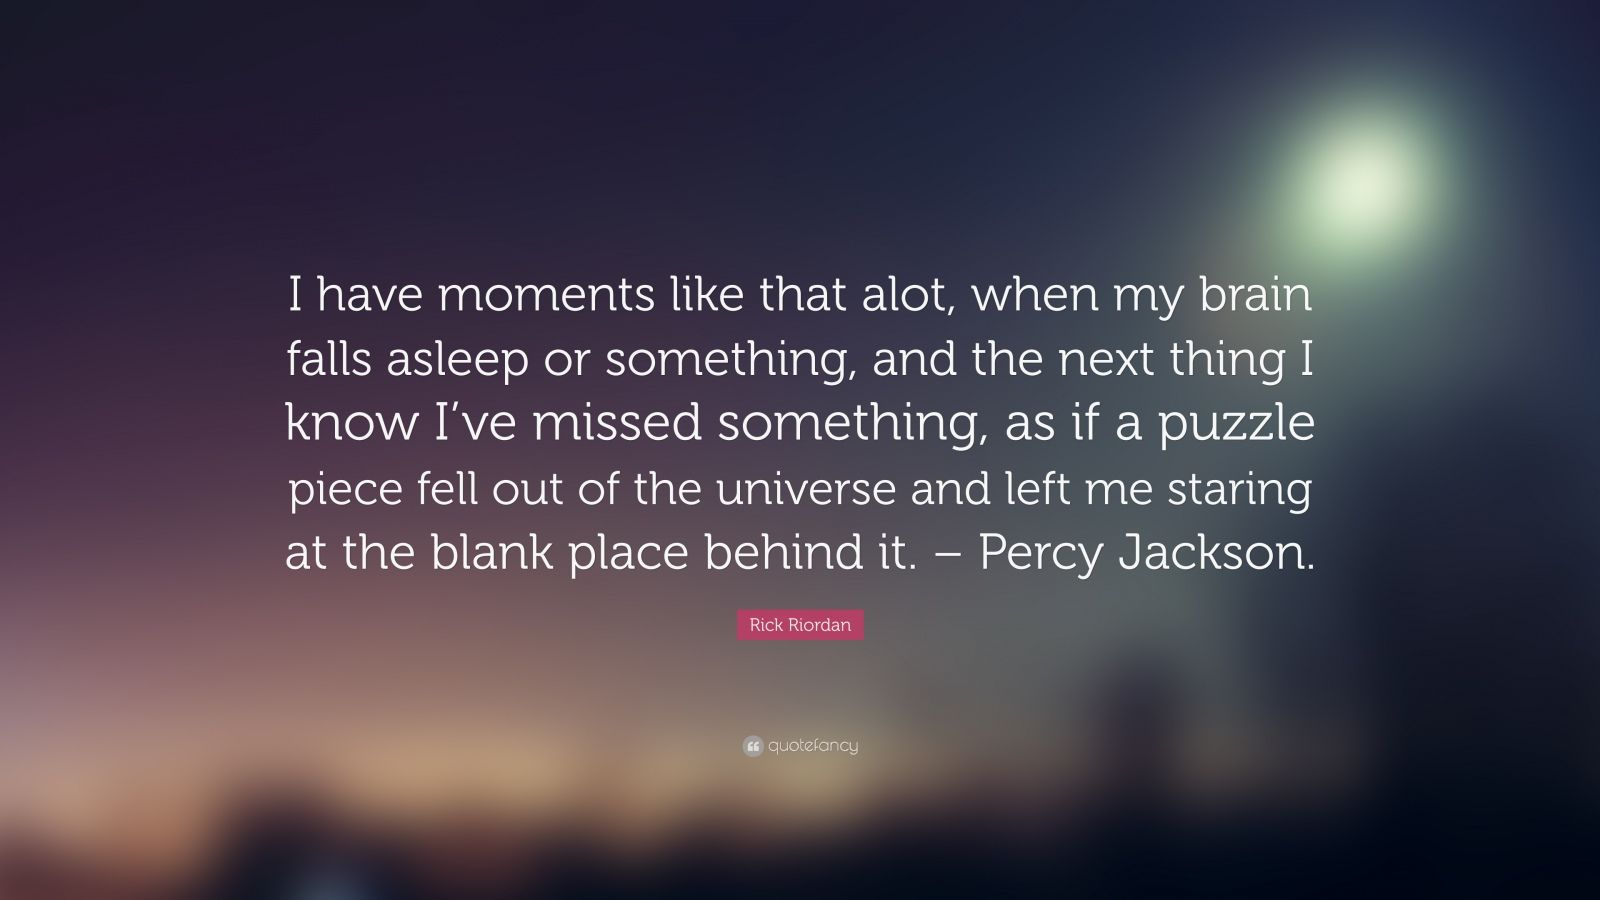 Rick riordan quotes 100 wallpapers quotefancy rick riordan quote i have moments like that alot when my brain falls voltagebd Image collections